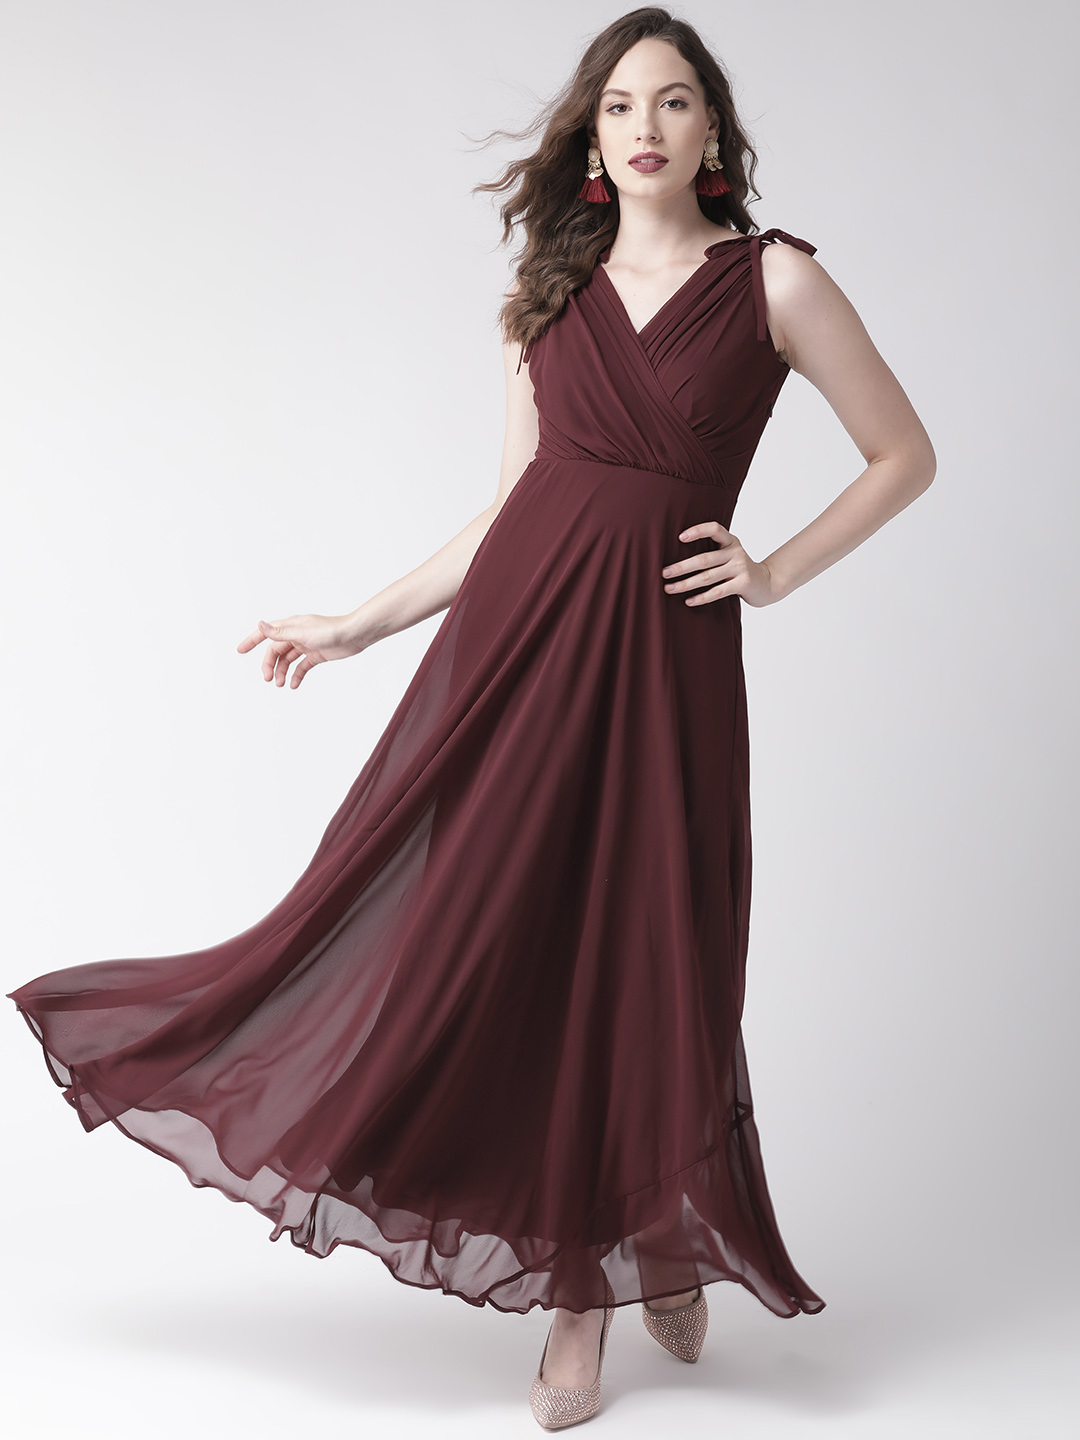 Dresses-Maroon Ready For The Royal Ball Maxi Dress1